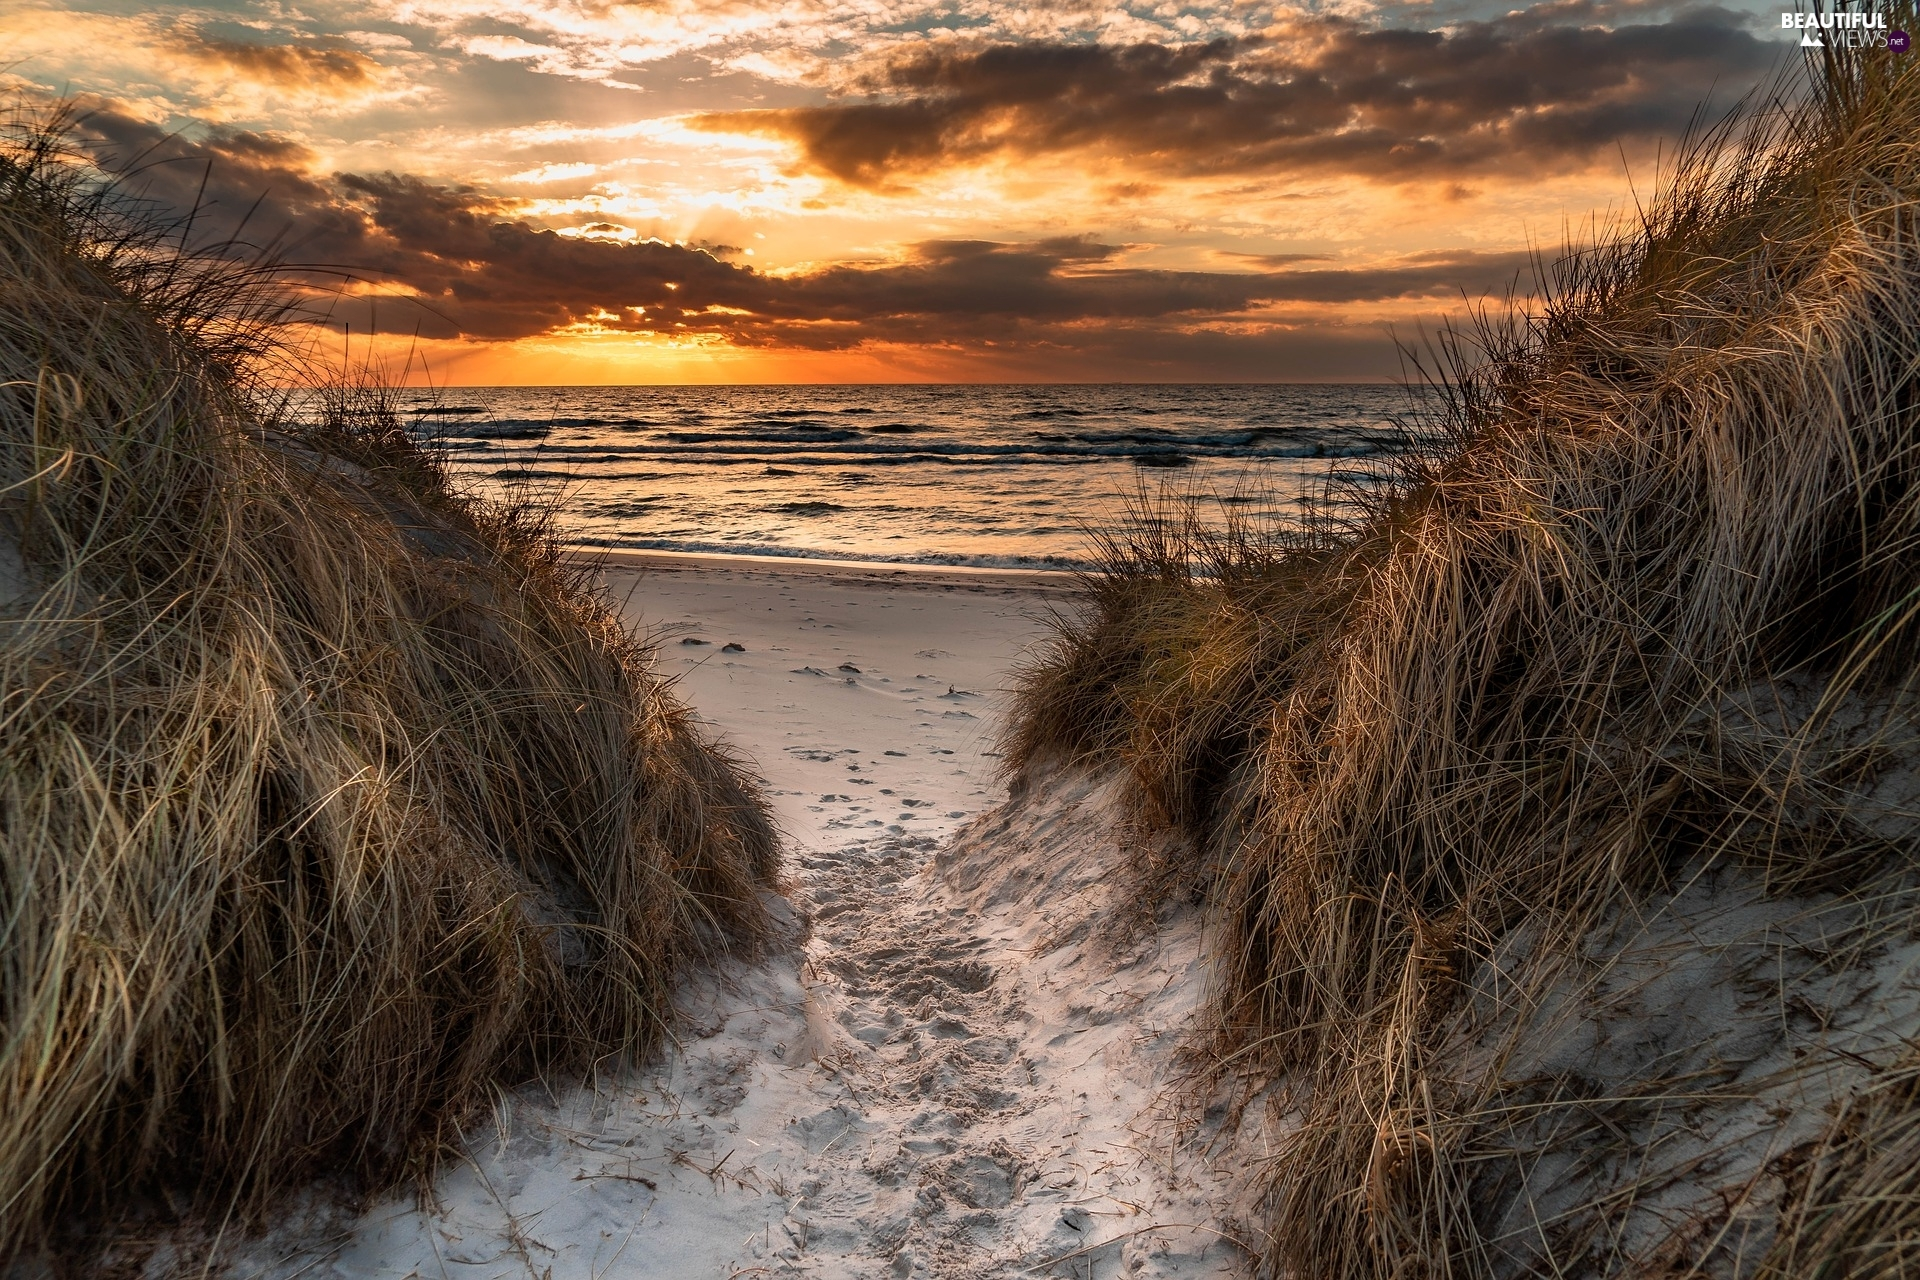 Beaches, Great Sunsets, Dunes, grass, Wooded, sea